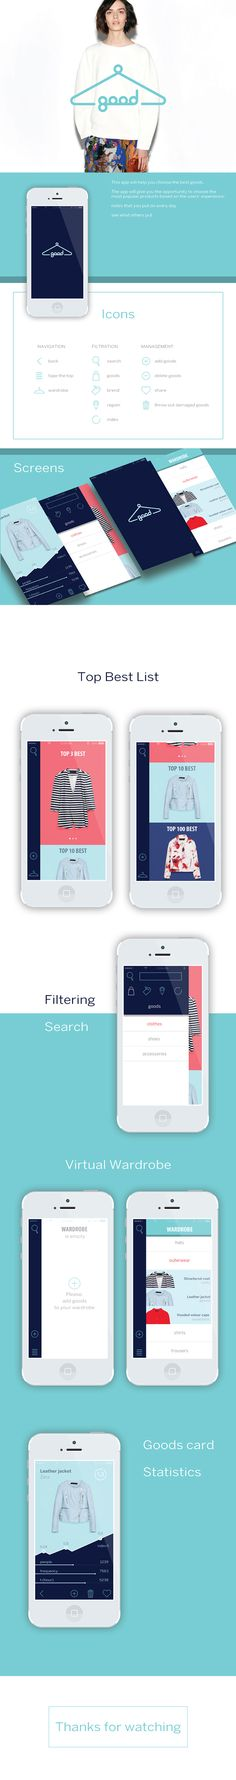 Iphone App GOODGOODS